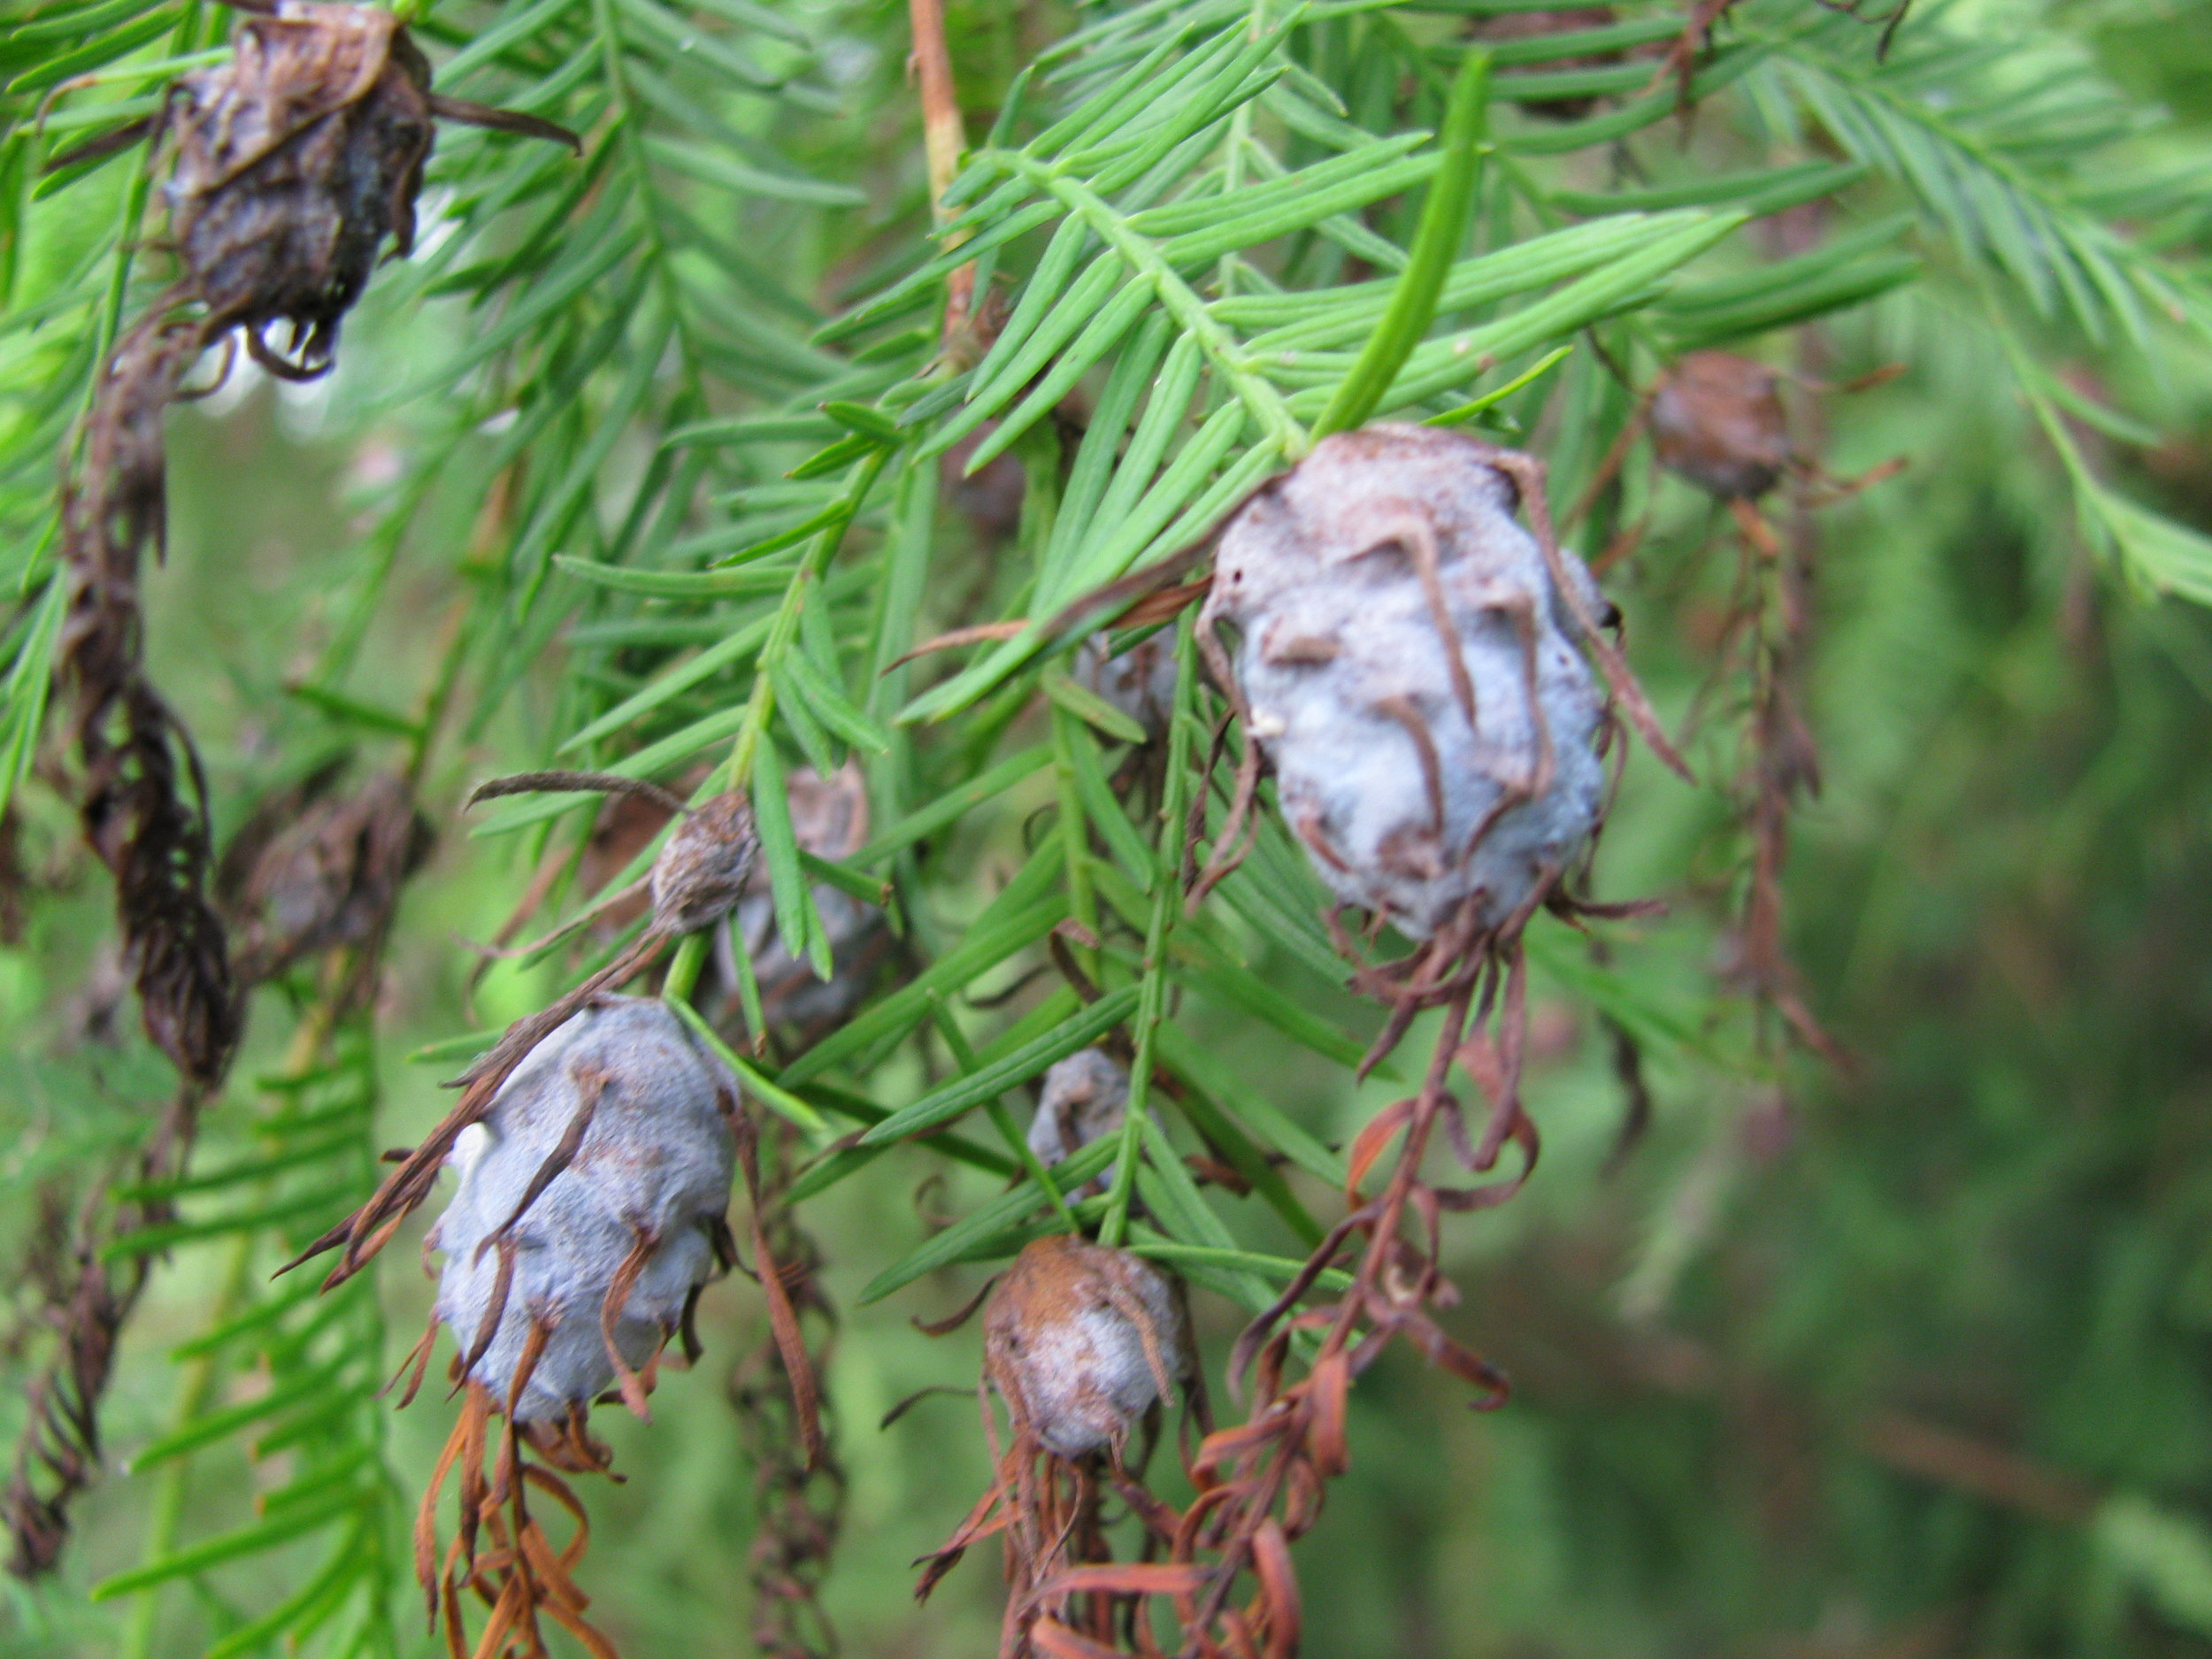 """""""   starr-090925-0263-Taxodium_distichum-fruit-Green_Cay_Wetlands-Florida   """" by    Forest and Kim Starr    is licensed under    CC BY 2.0"""